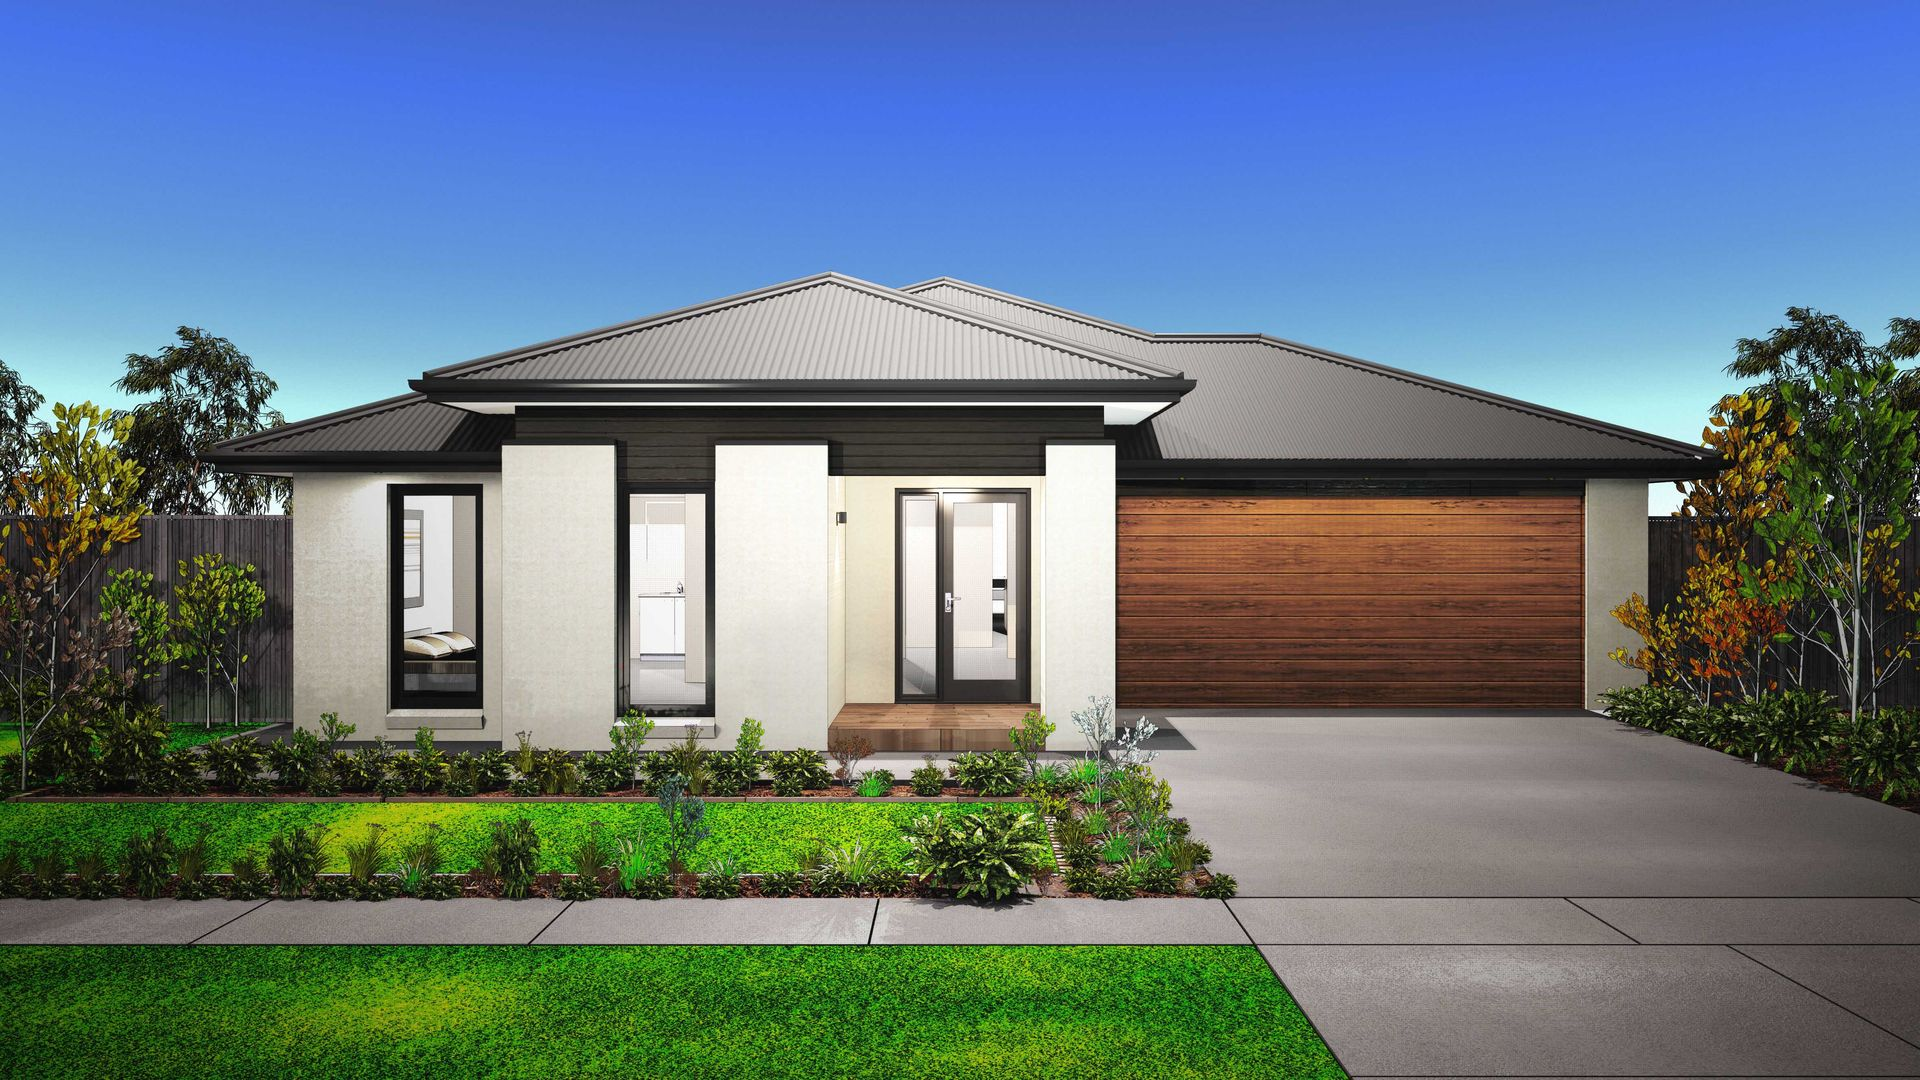 Lot 19 Carisbrooke Drive, Warragul VIC 3820, Image 0